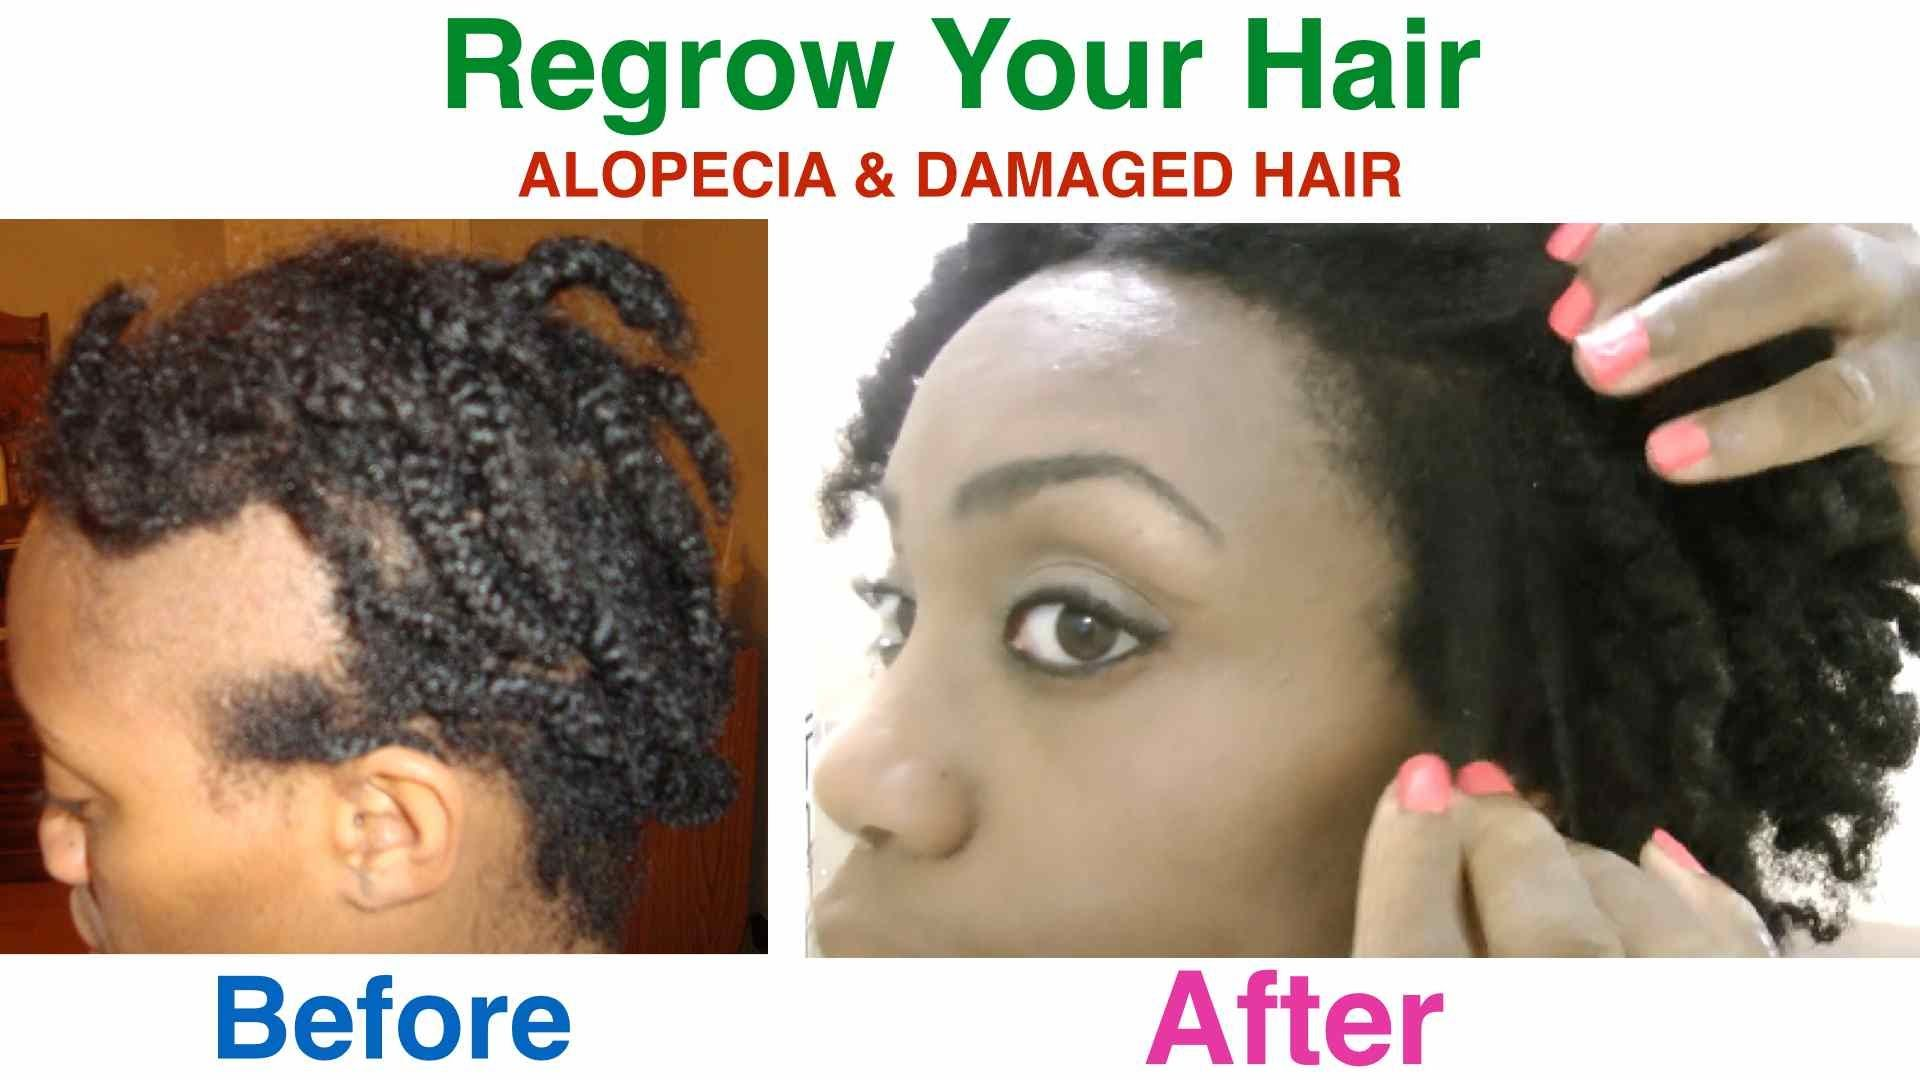 I Cured My Alopecia Areata & Damaged Hair And I Share My